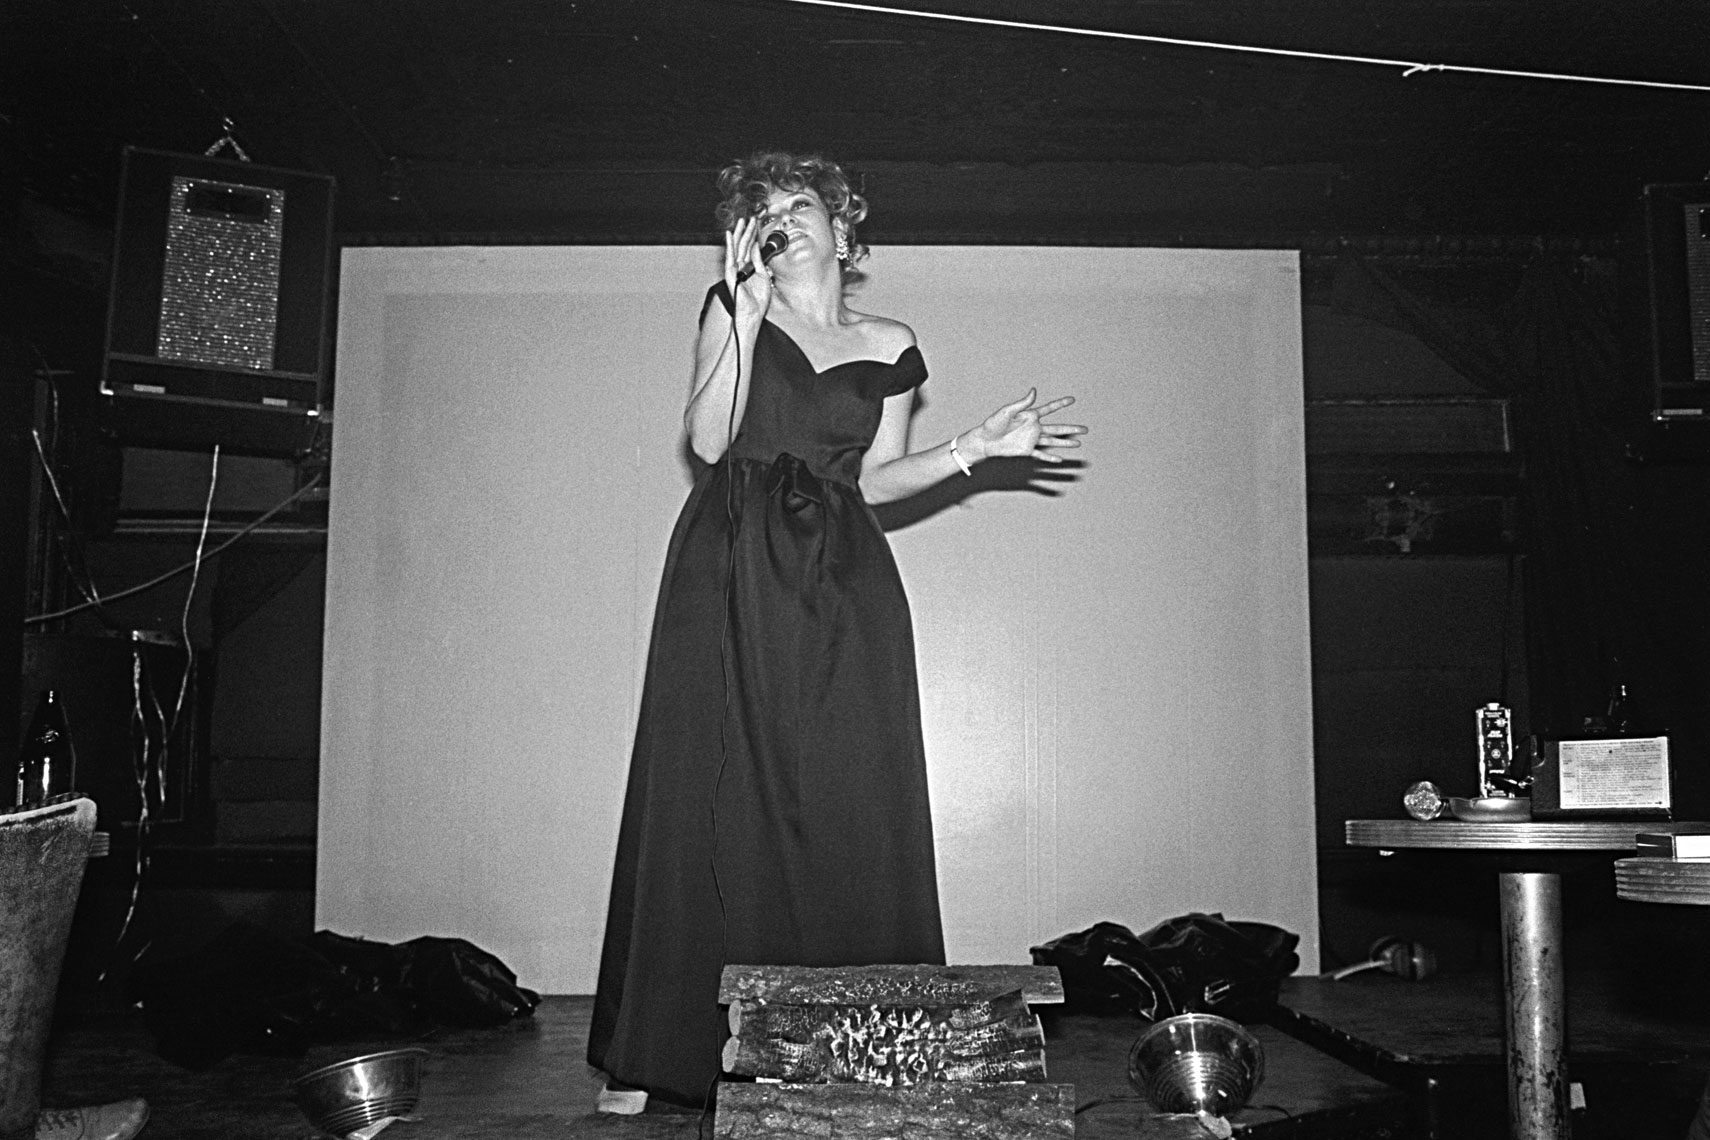 015_Club57_Acts-of-Live-Art_Ann-Magnuson_0680.jpg